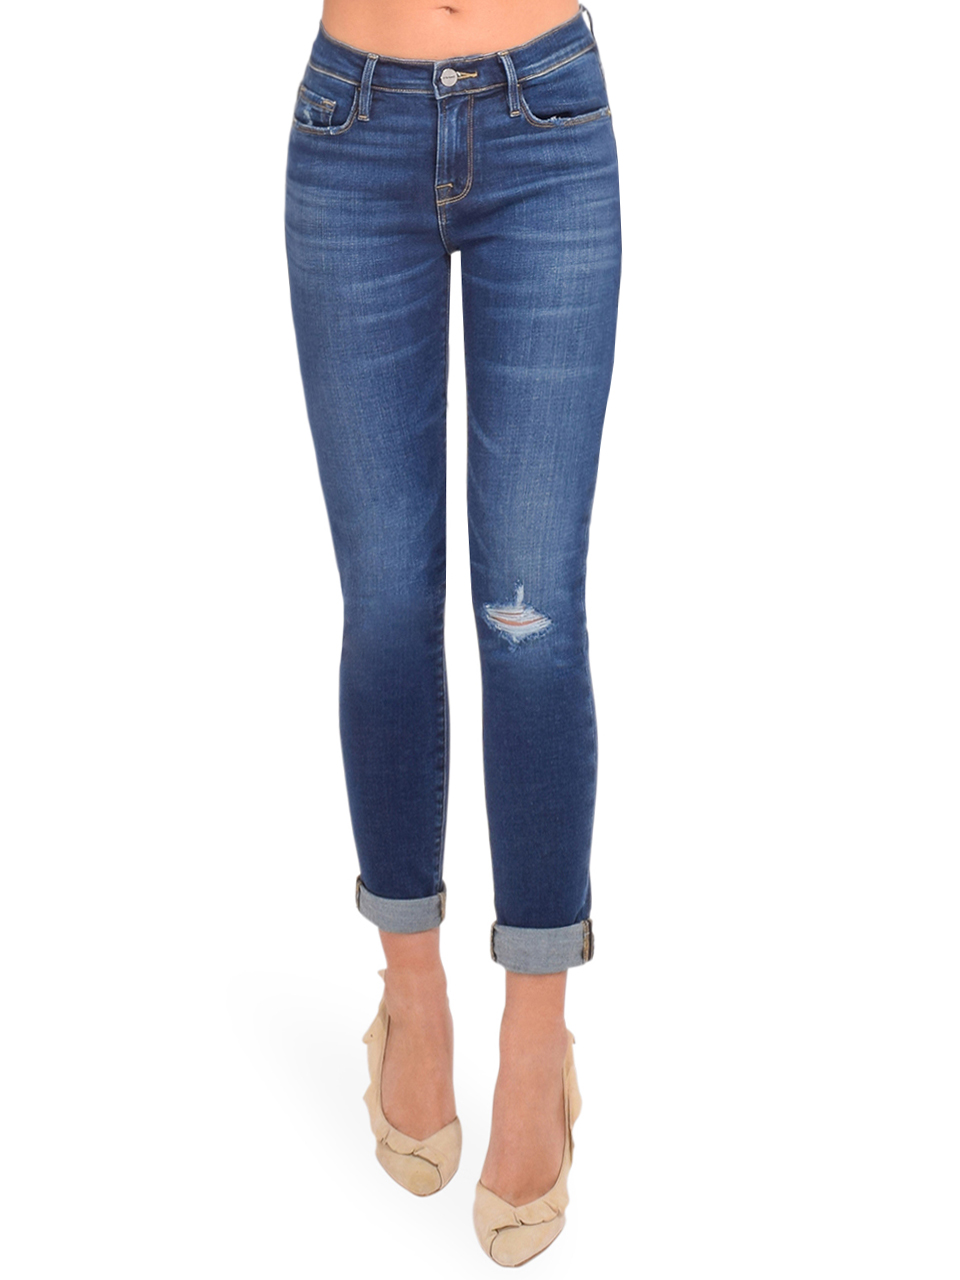 FRAME Le Garcon Straight Leg Jean in Caribou Front View